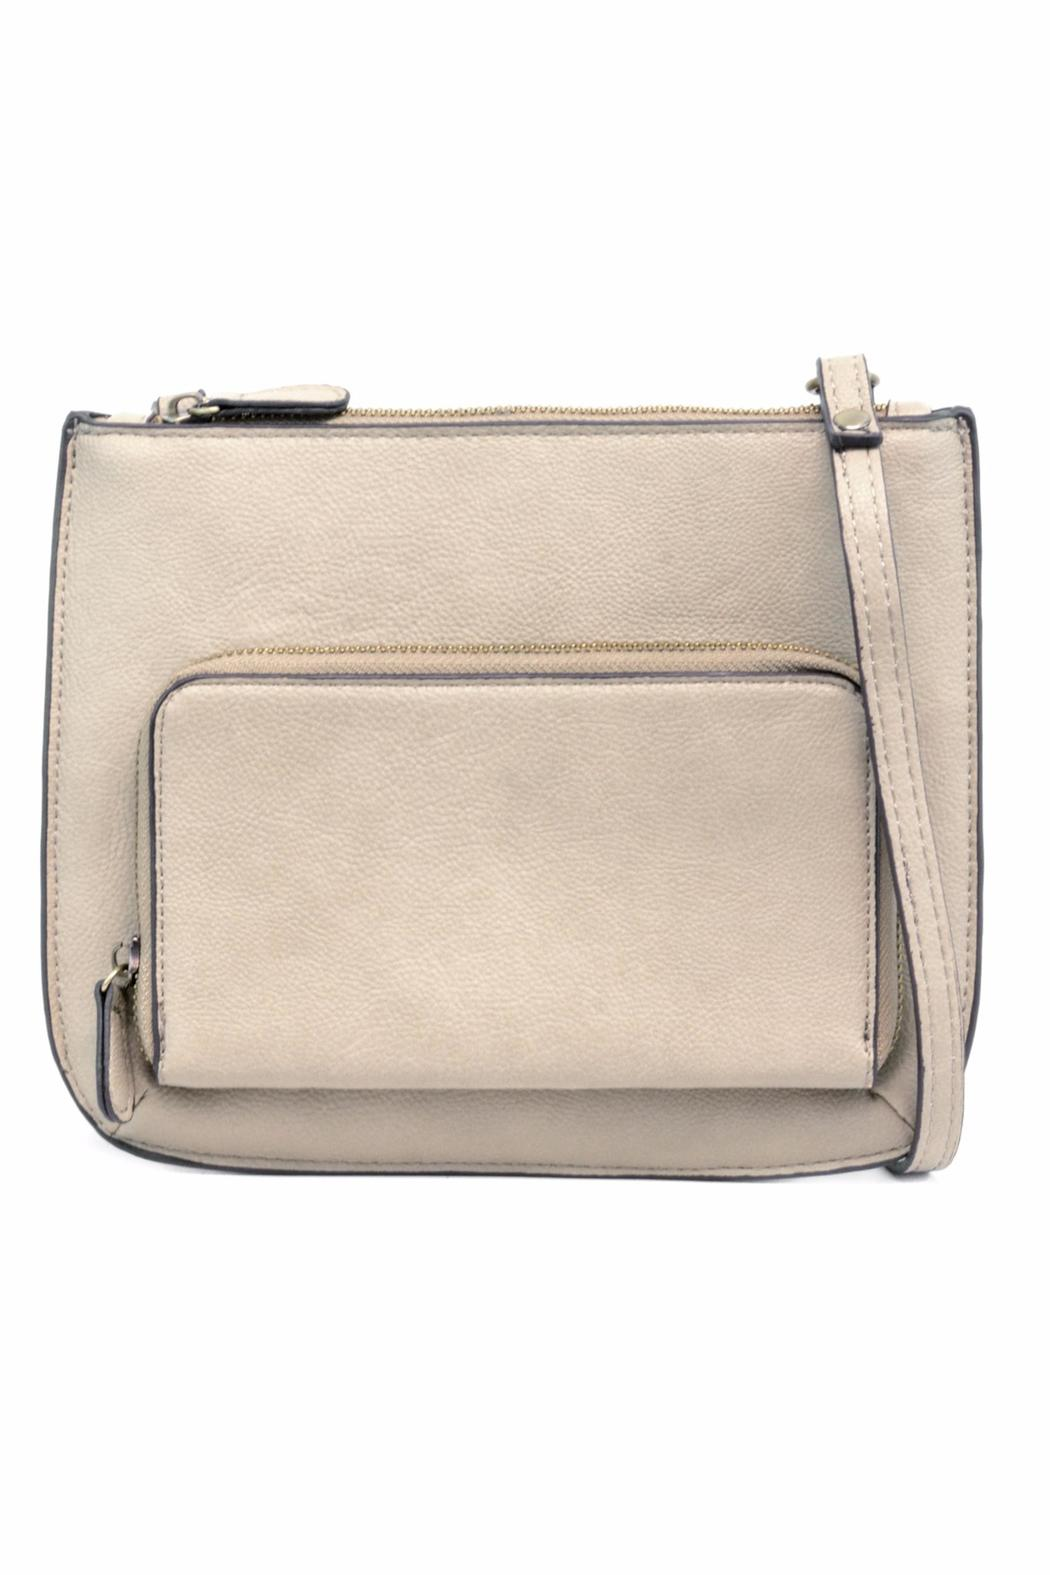 Joy susan cross body bag from maine by bella fiore joy susan cross body bag front cropped image jeuxipadfo Gallery